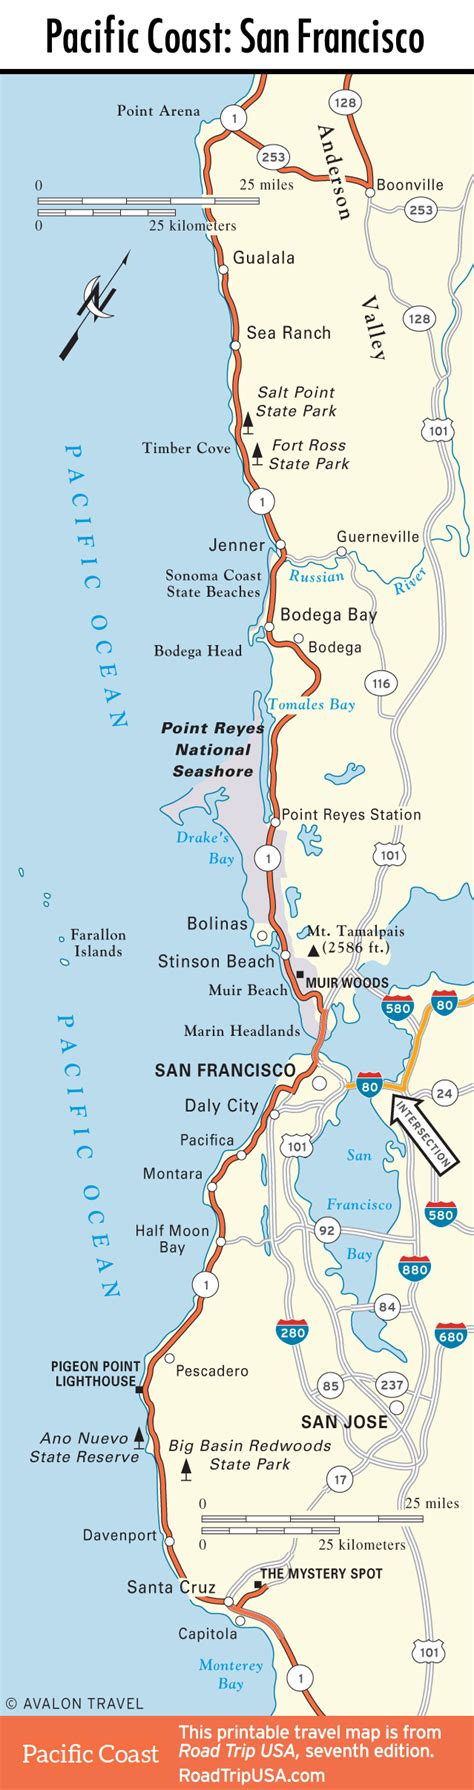 road map of pacific coast usa pacific coast highway road trip usa